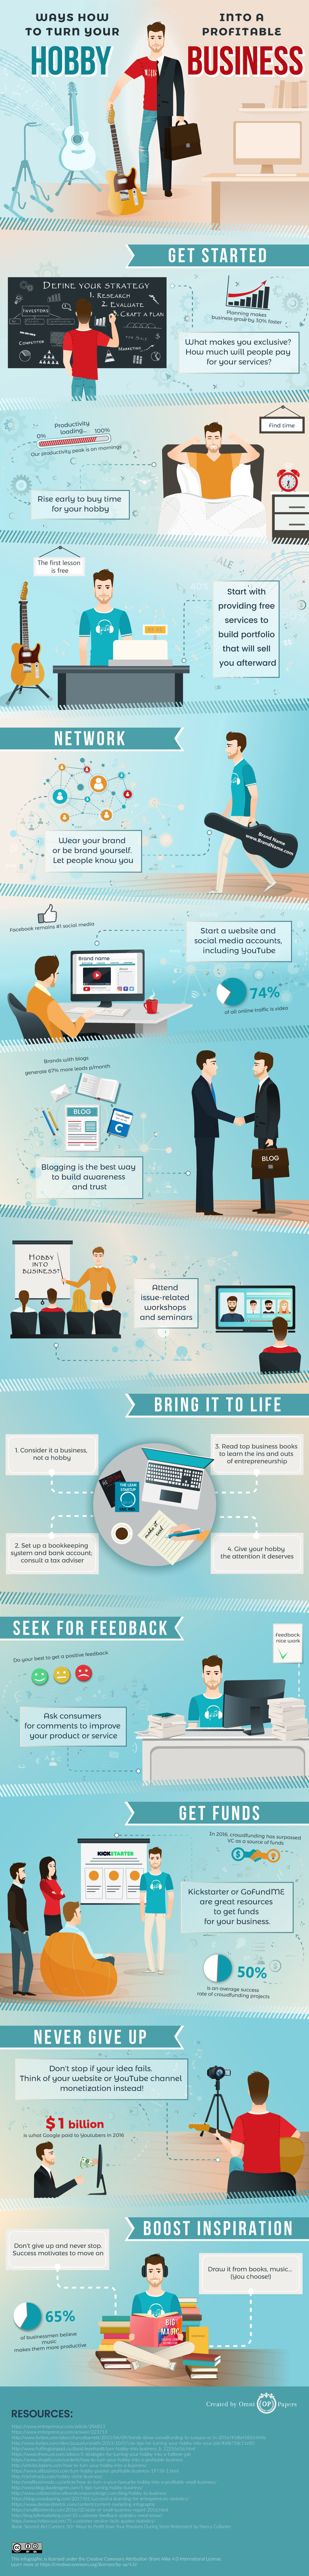 Monetize Your Passion: Make Your Hobby into a Business - Infographic